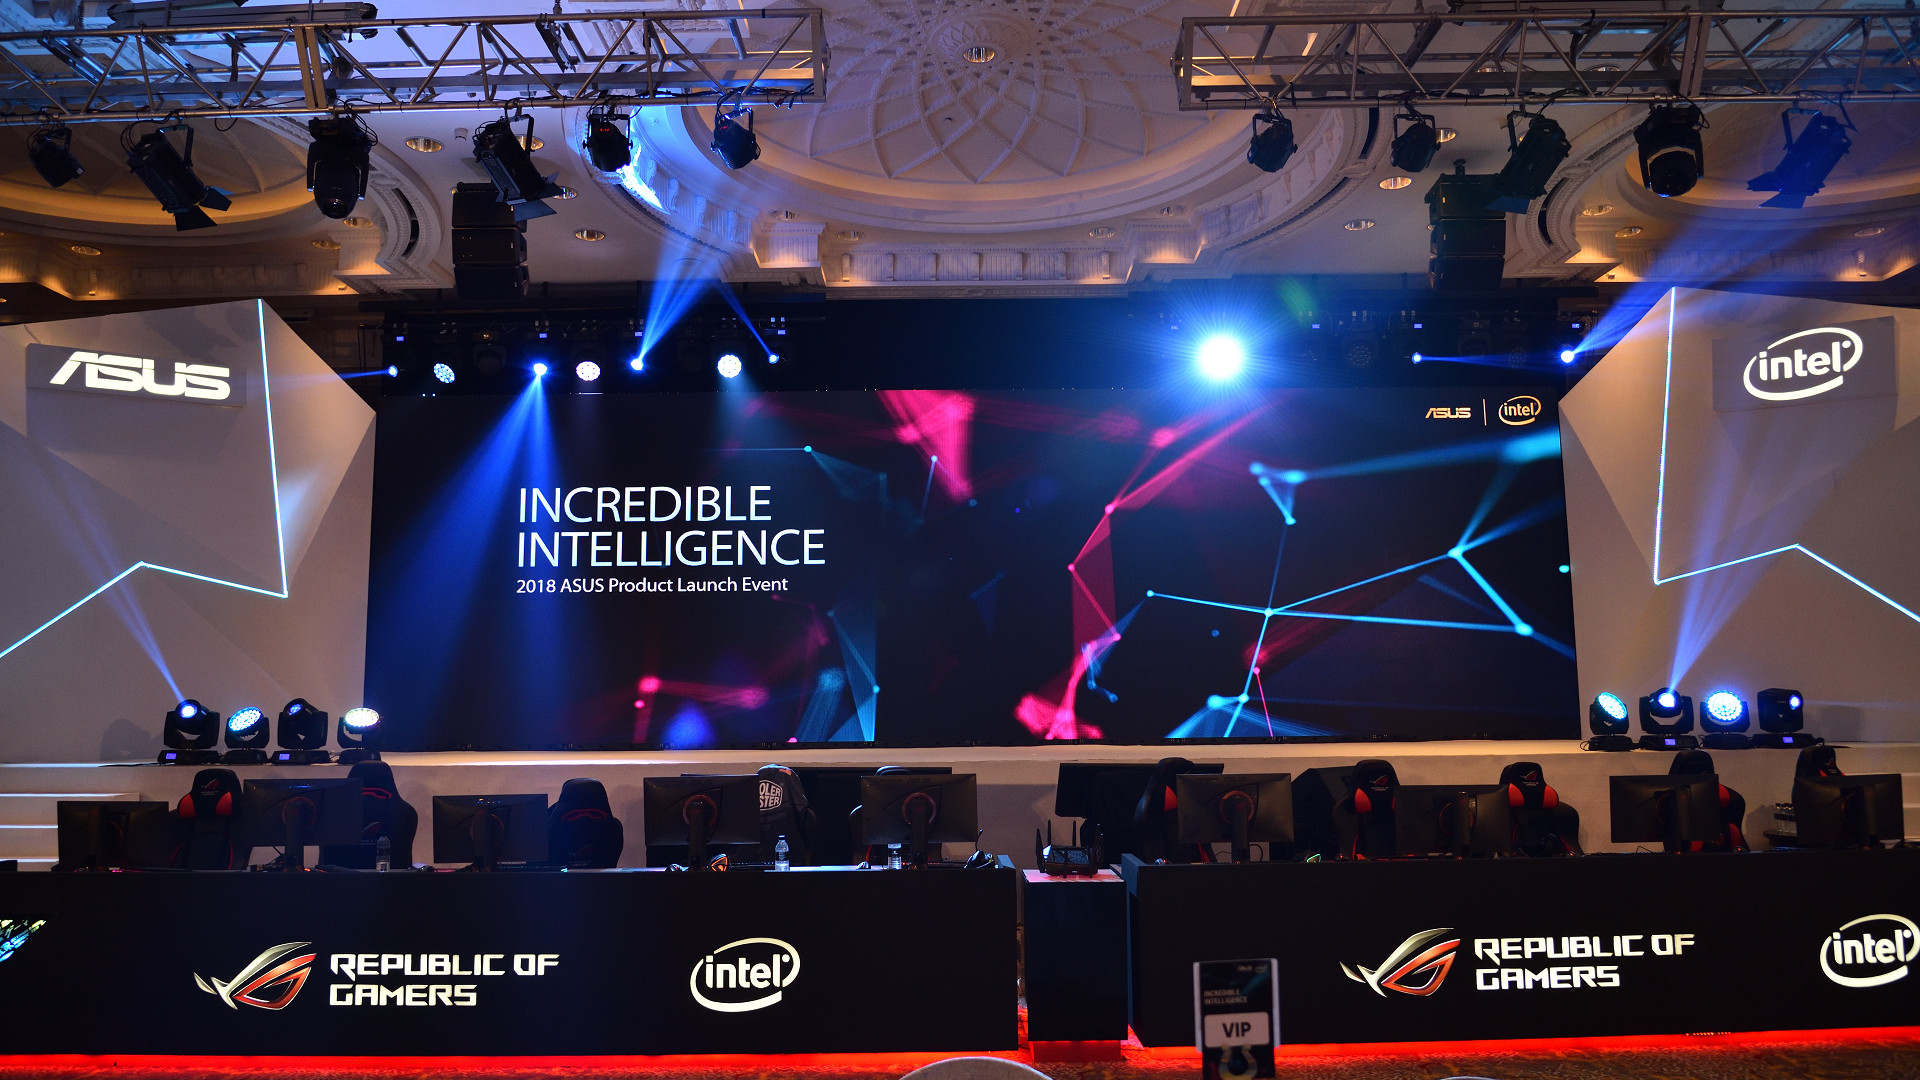 ASUS Incredible Intelligence 2018 亞太新品發布會走訪